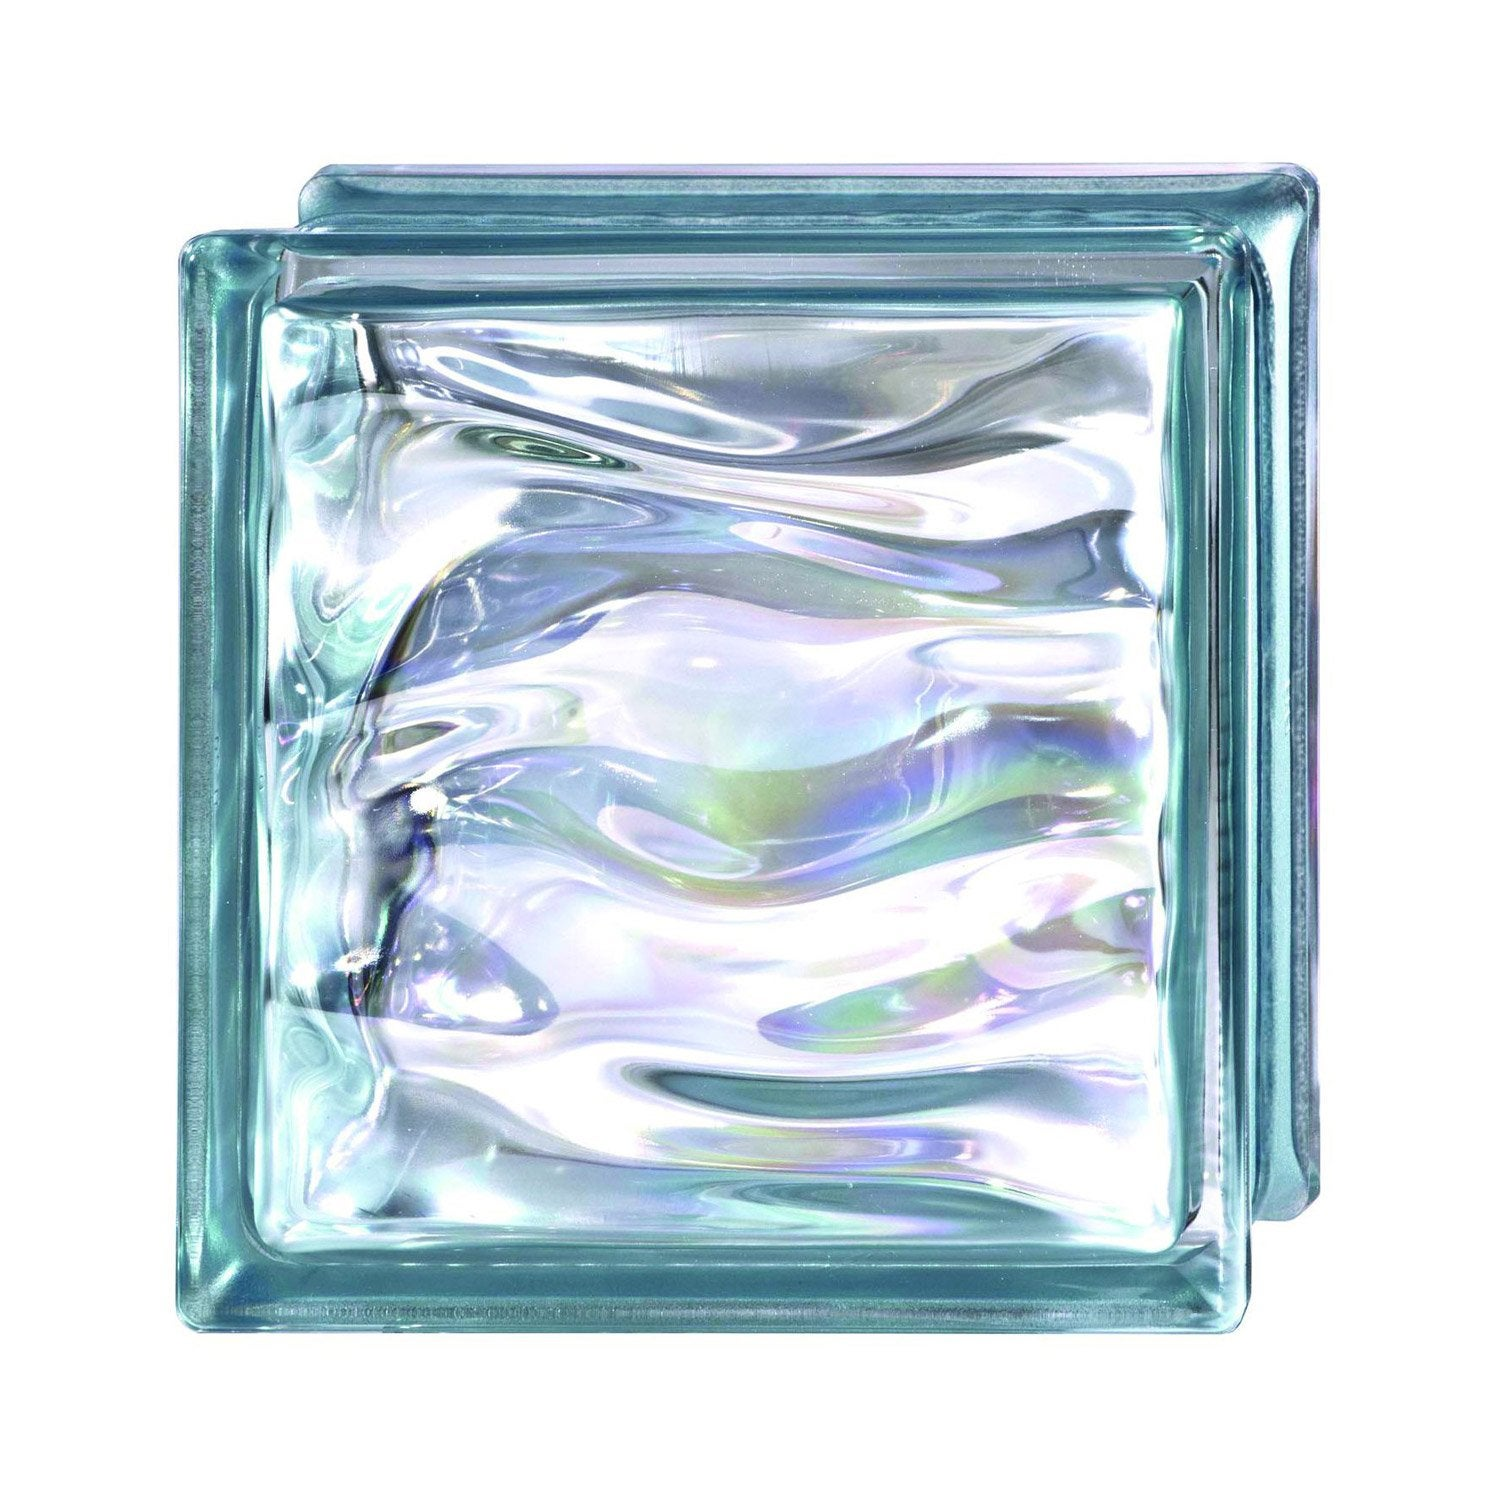 Brique de verre bleu vague brillant leroy merlin for Pave verre salle de bain